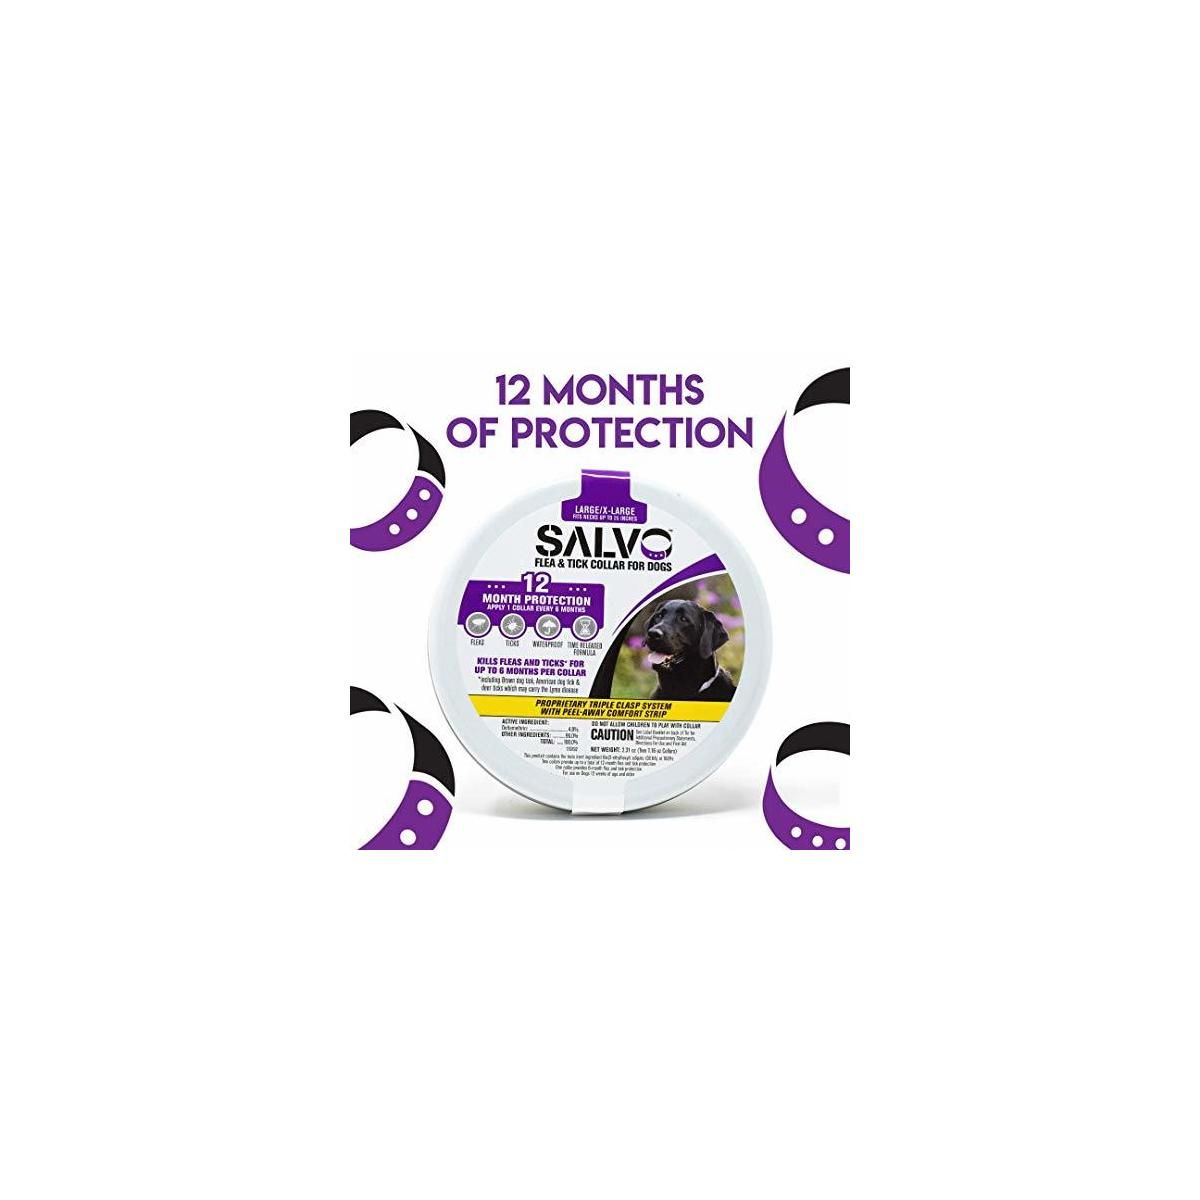 SALVO Flea and Tick Collar for Dogs - Large - Pack of 2 for 12 Months of Protection - Waterproof, Durable Collar Fits Necks Up to 25 Inches